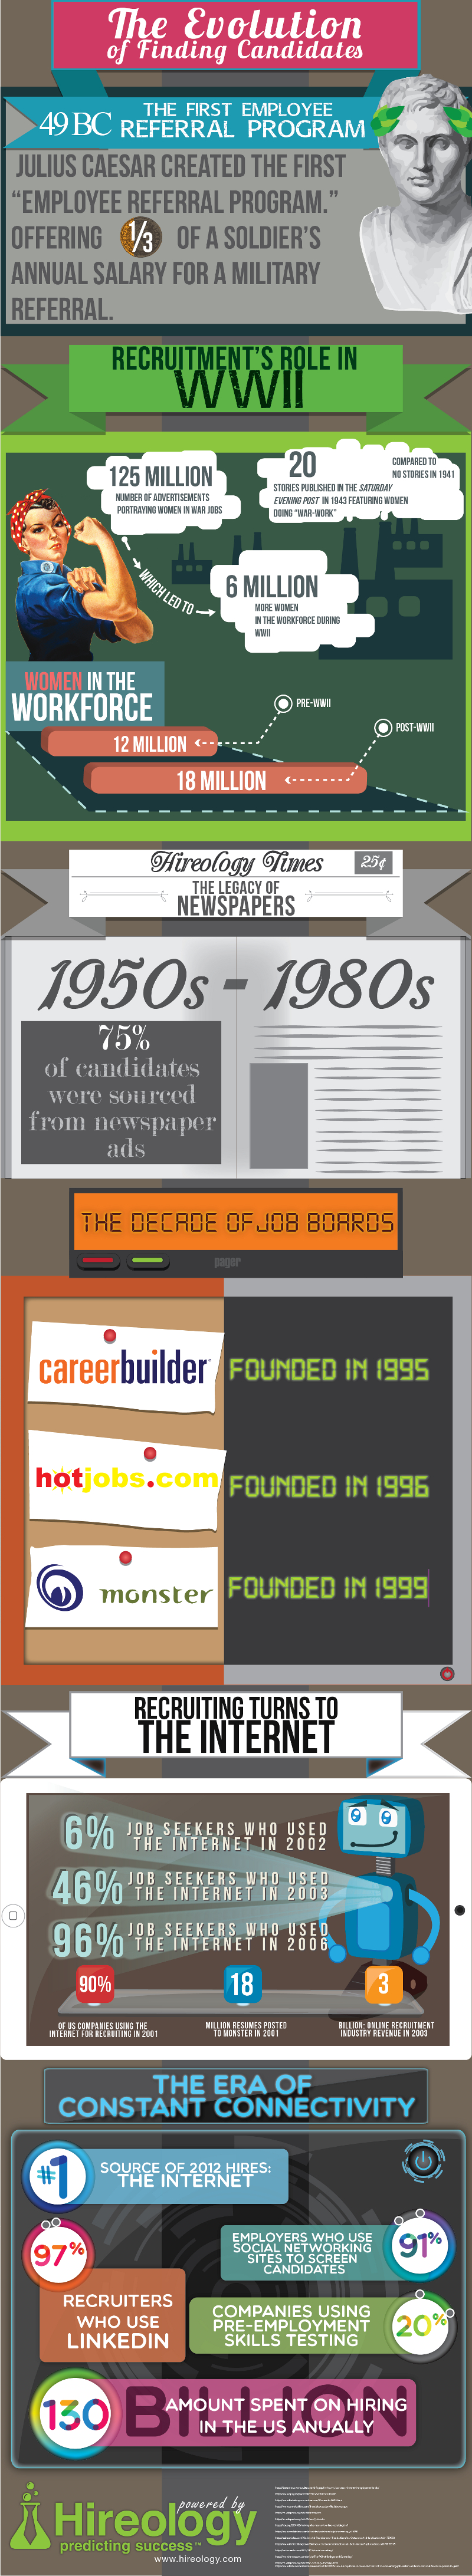 Recruiting Candidates Trends